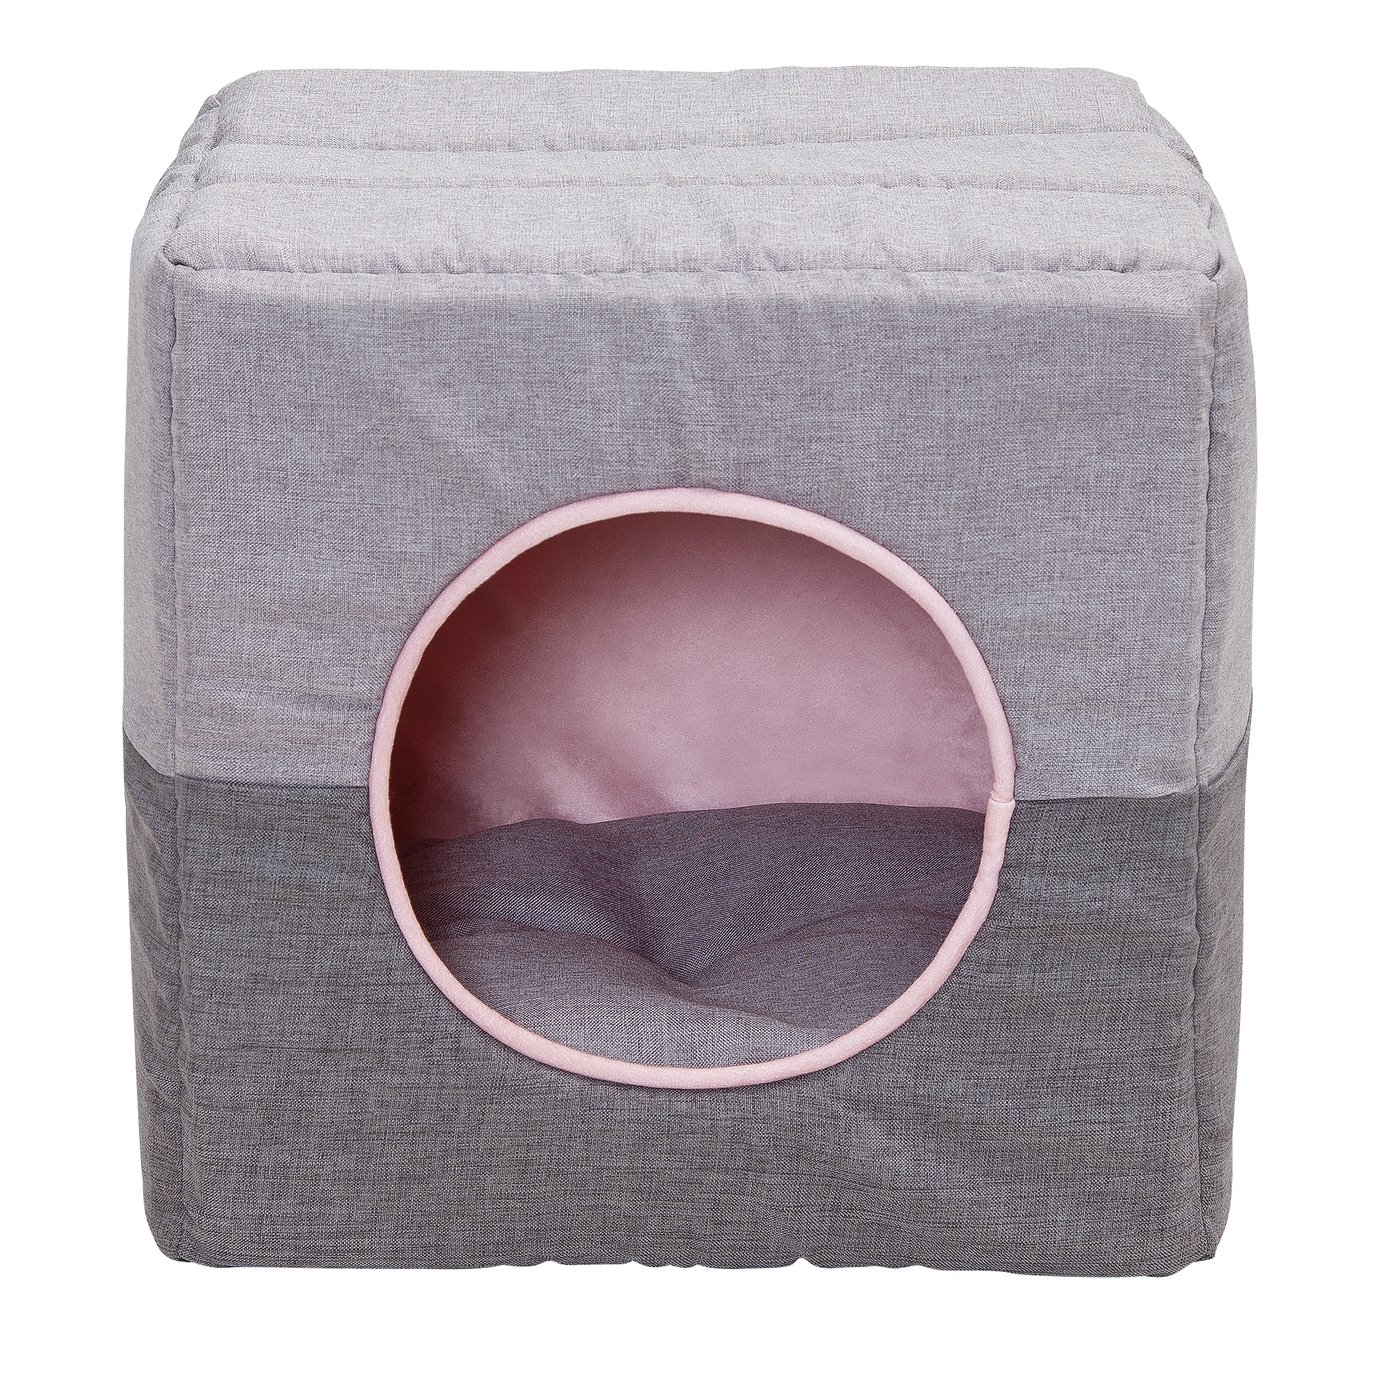 2 In 1 Cat Box Bed